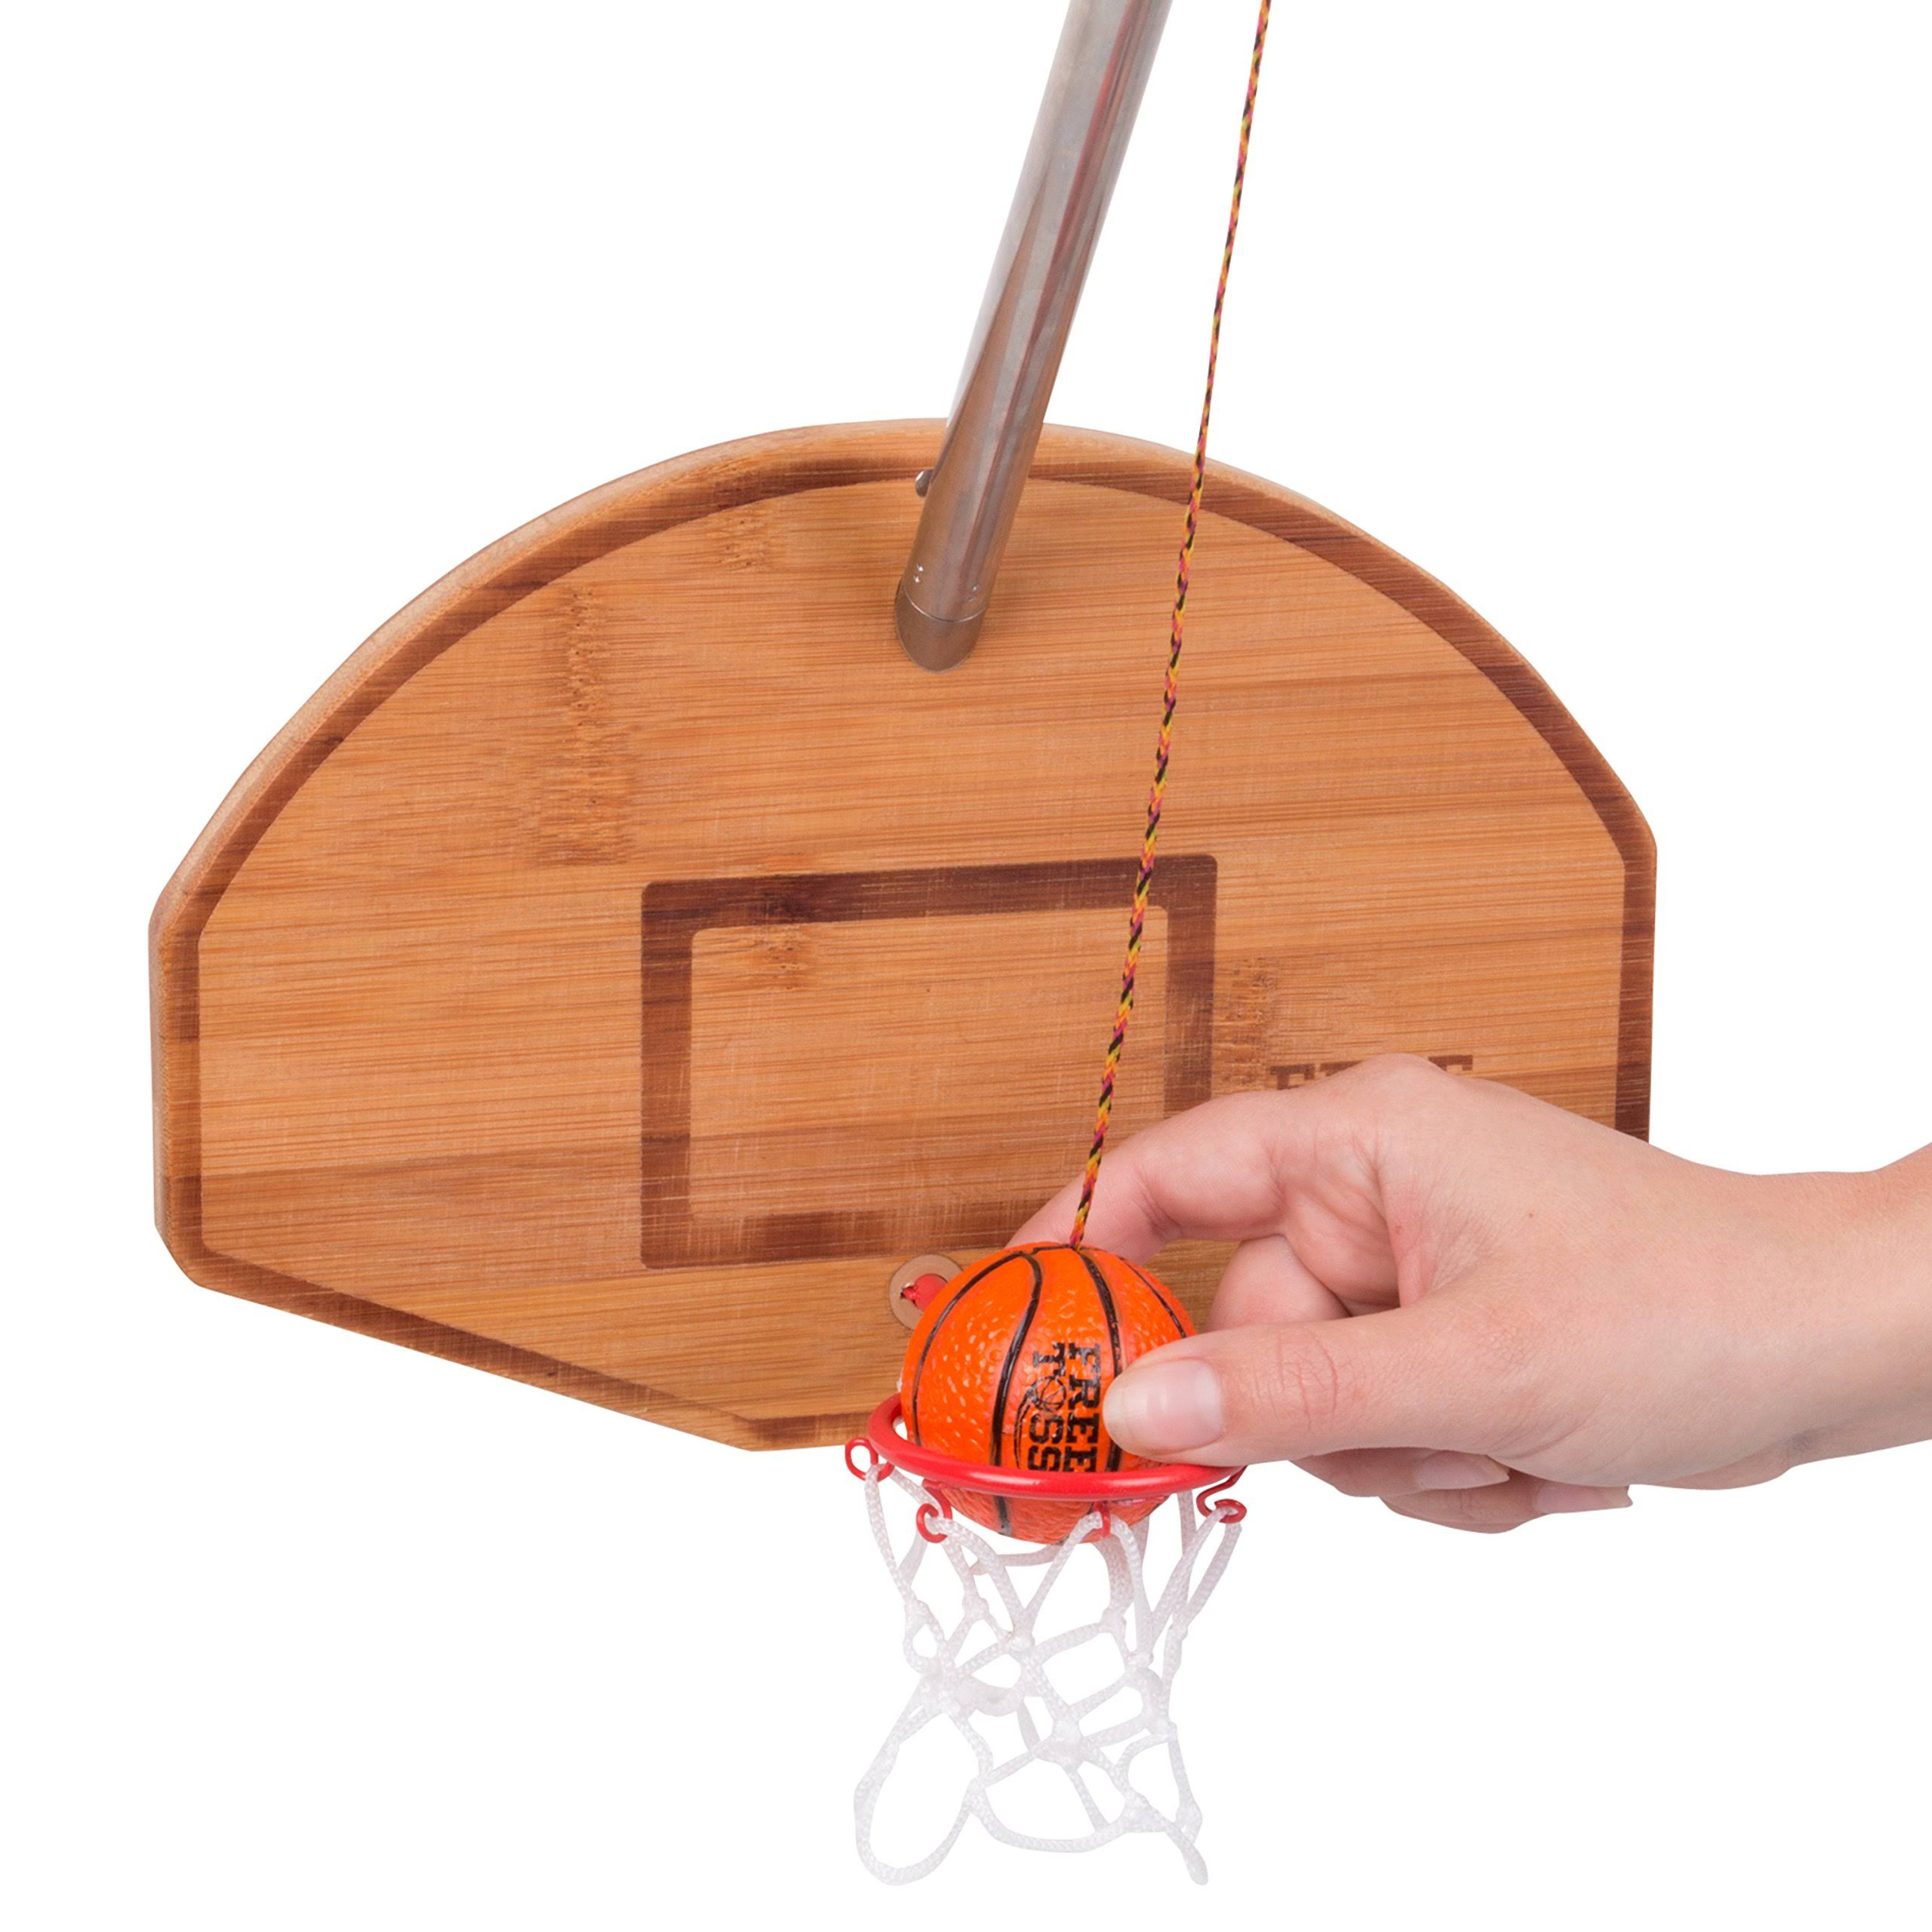 Free Toss Hoop Deluxe Swing Toss Basketball and Toss Game